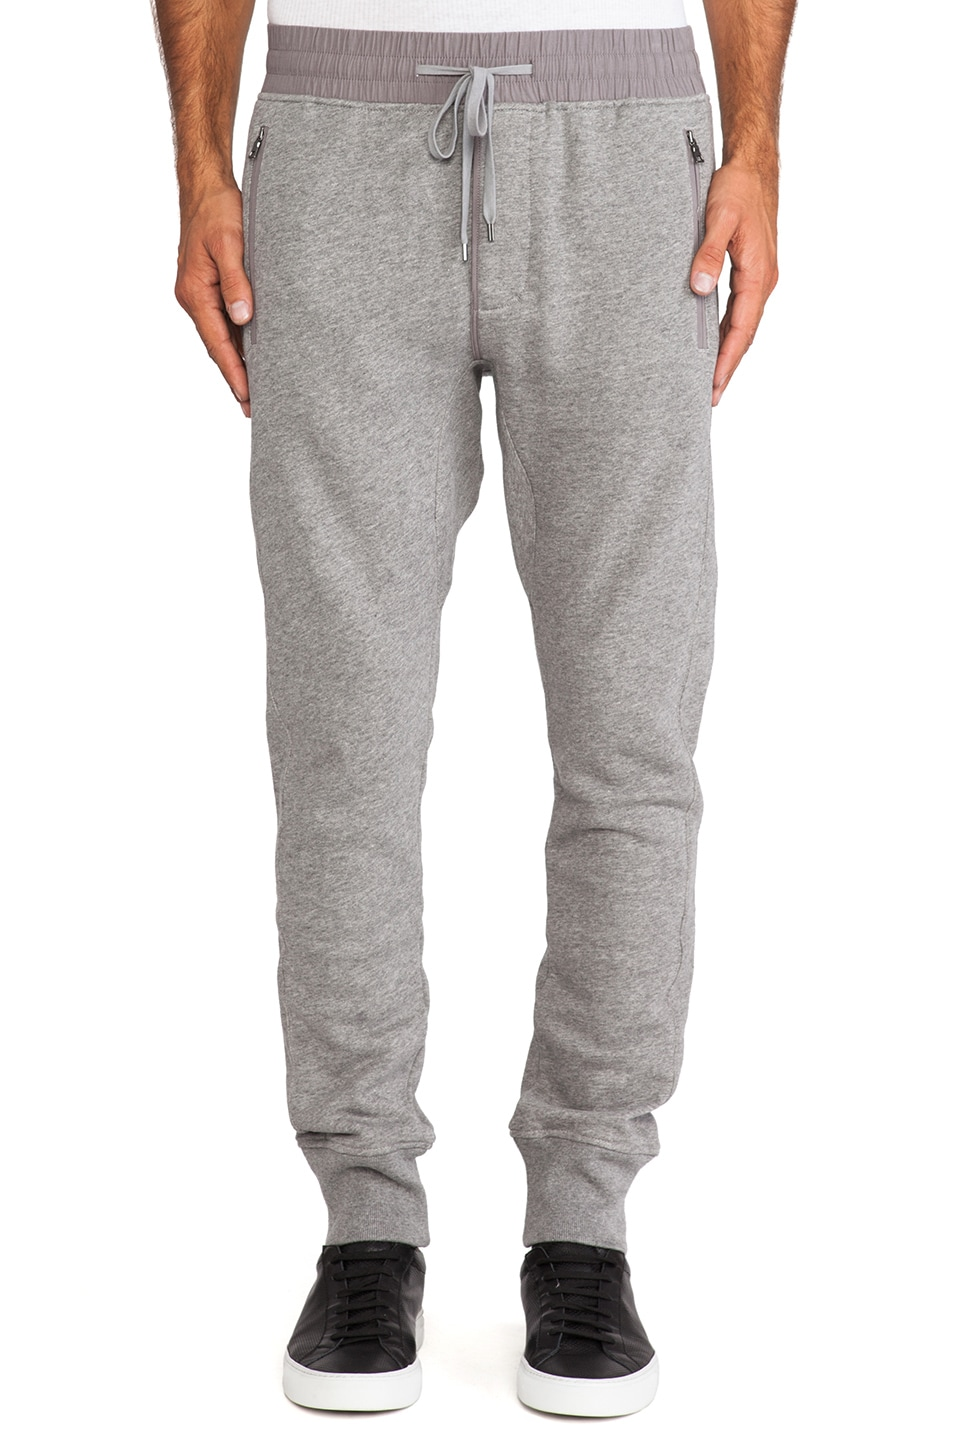 Vince French Terry Sweatpant in Heather Cinder